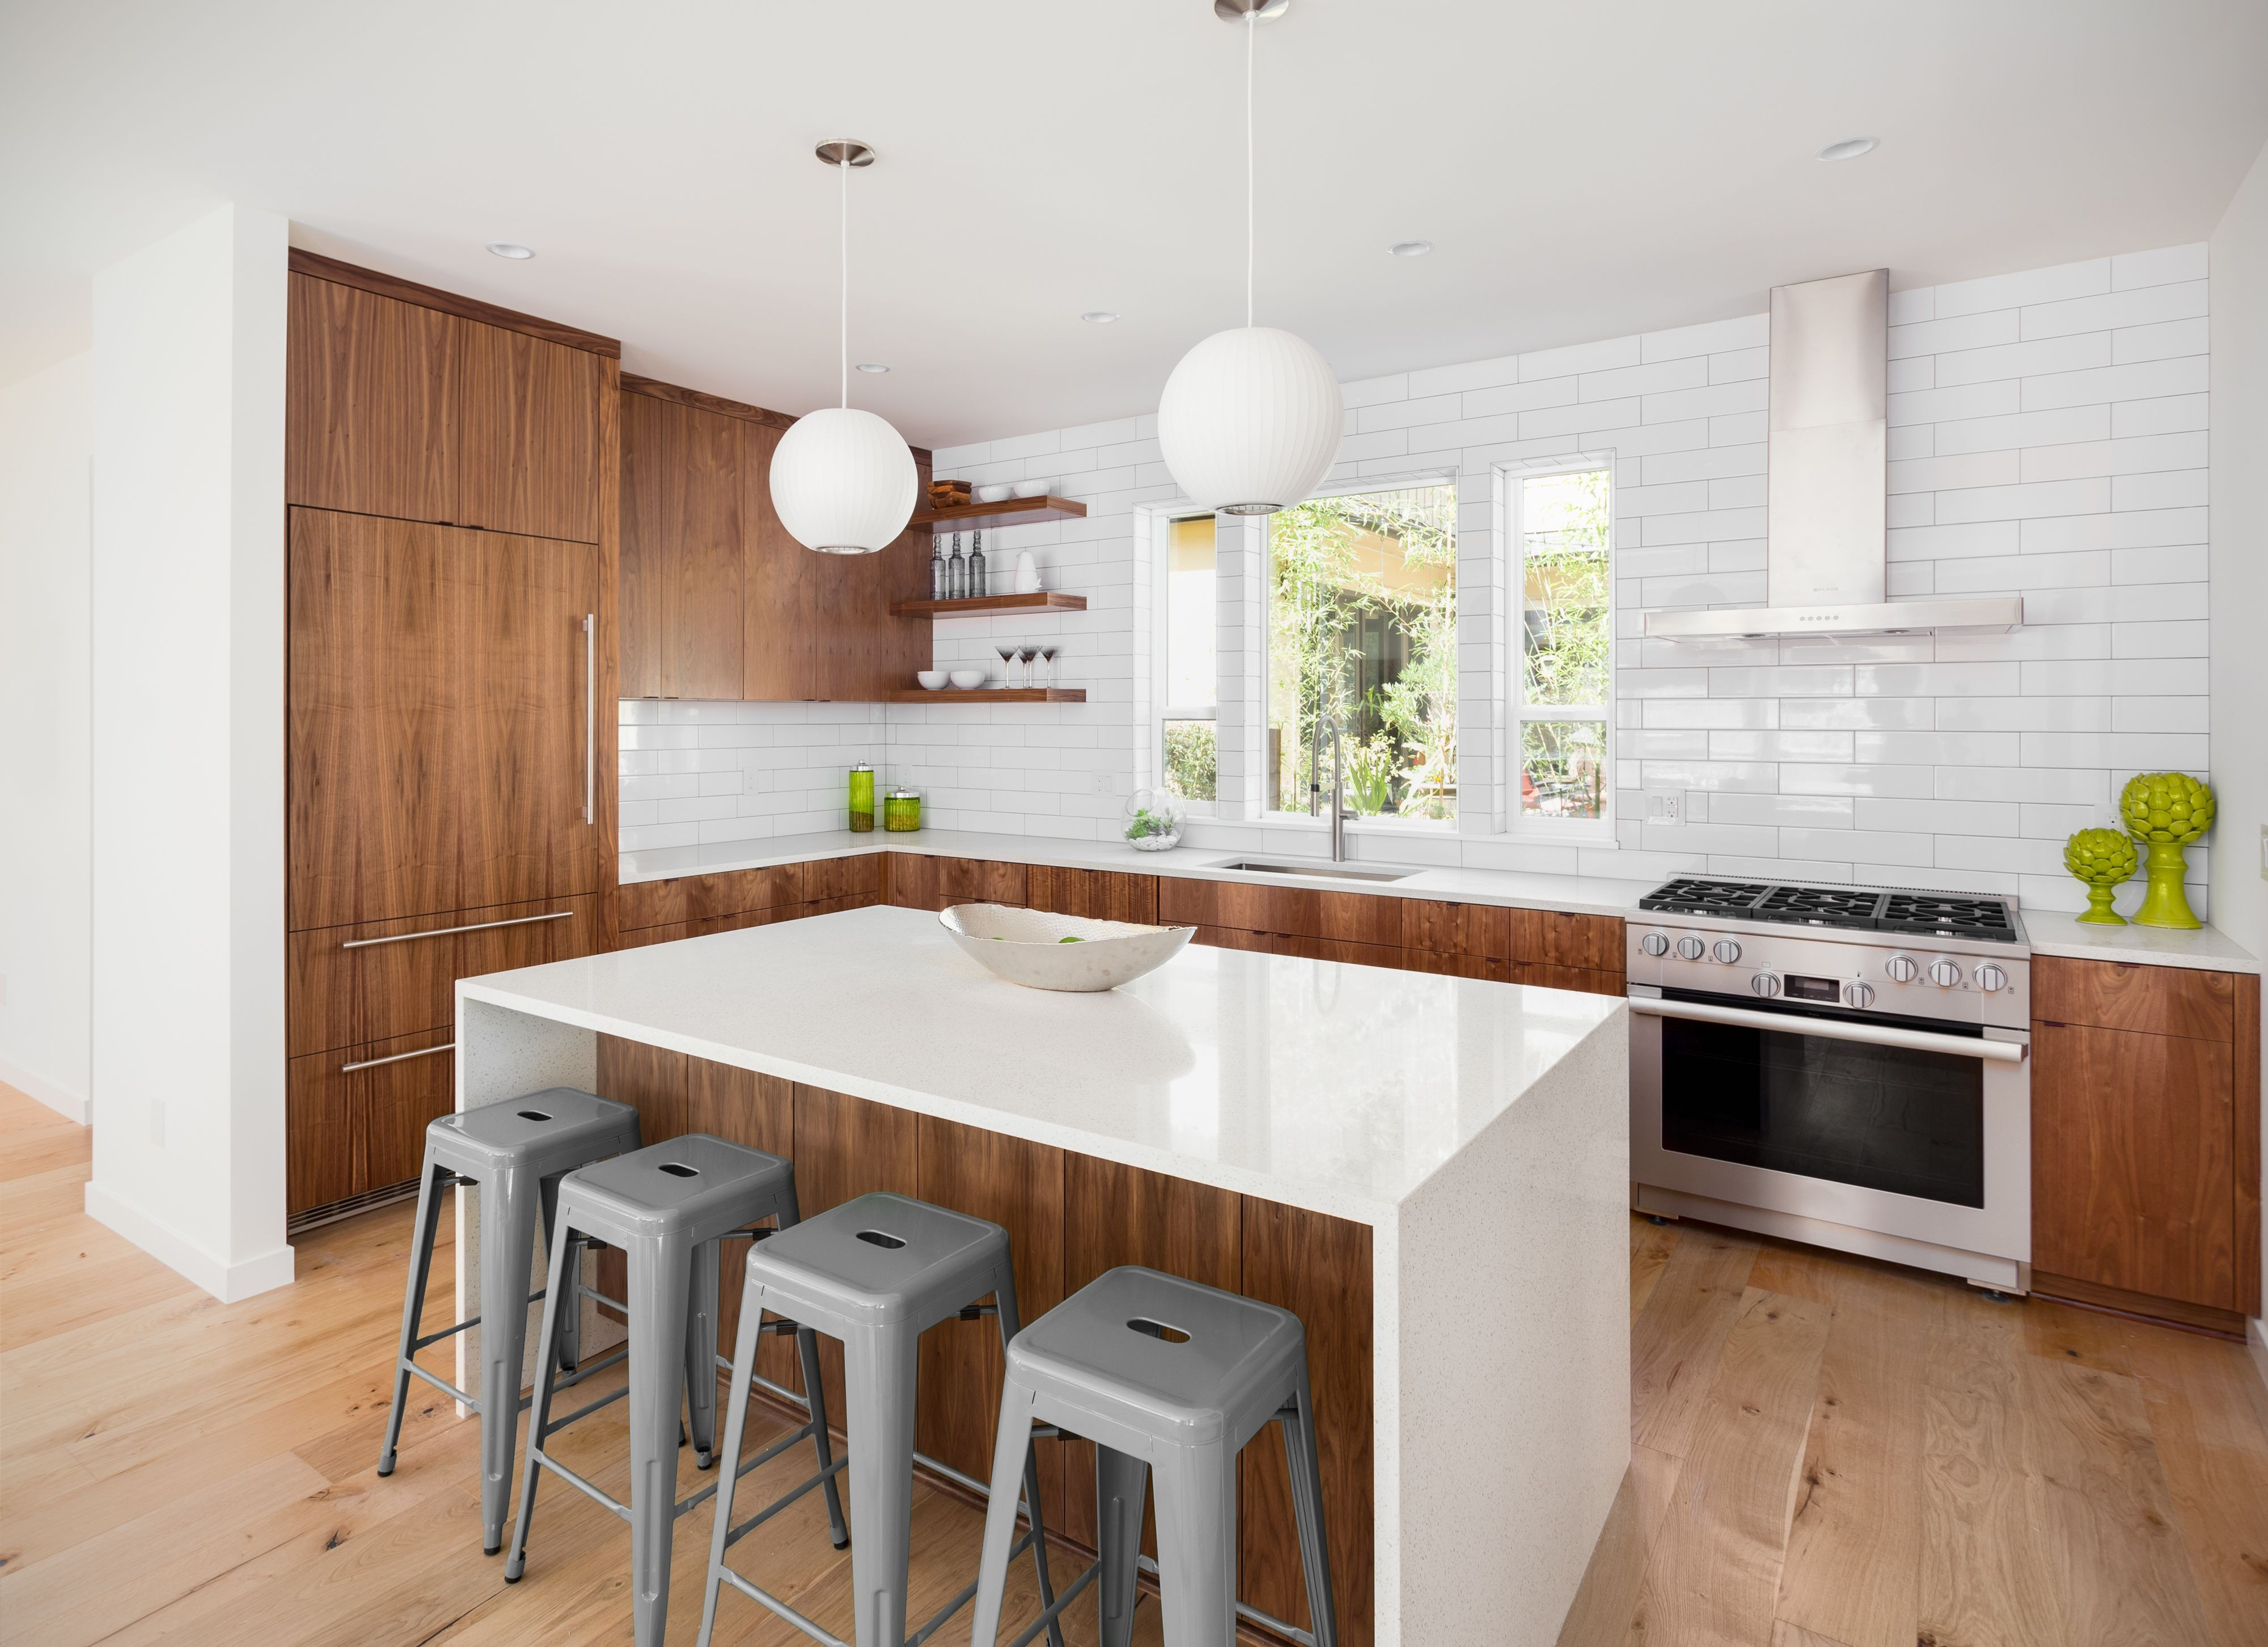 different colored hardwood floors same house of gorgeous painting kitchen cabinets two different colors painted intended for beautiful kitchen in new luxury home with island pendant lights and hardwood floors 935916772 5ab408a6c064710036f8e177